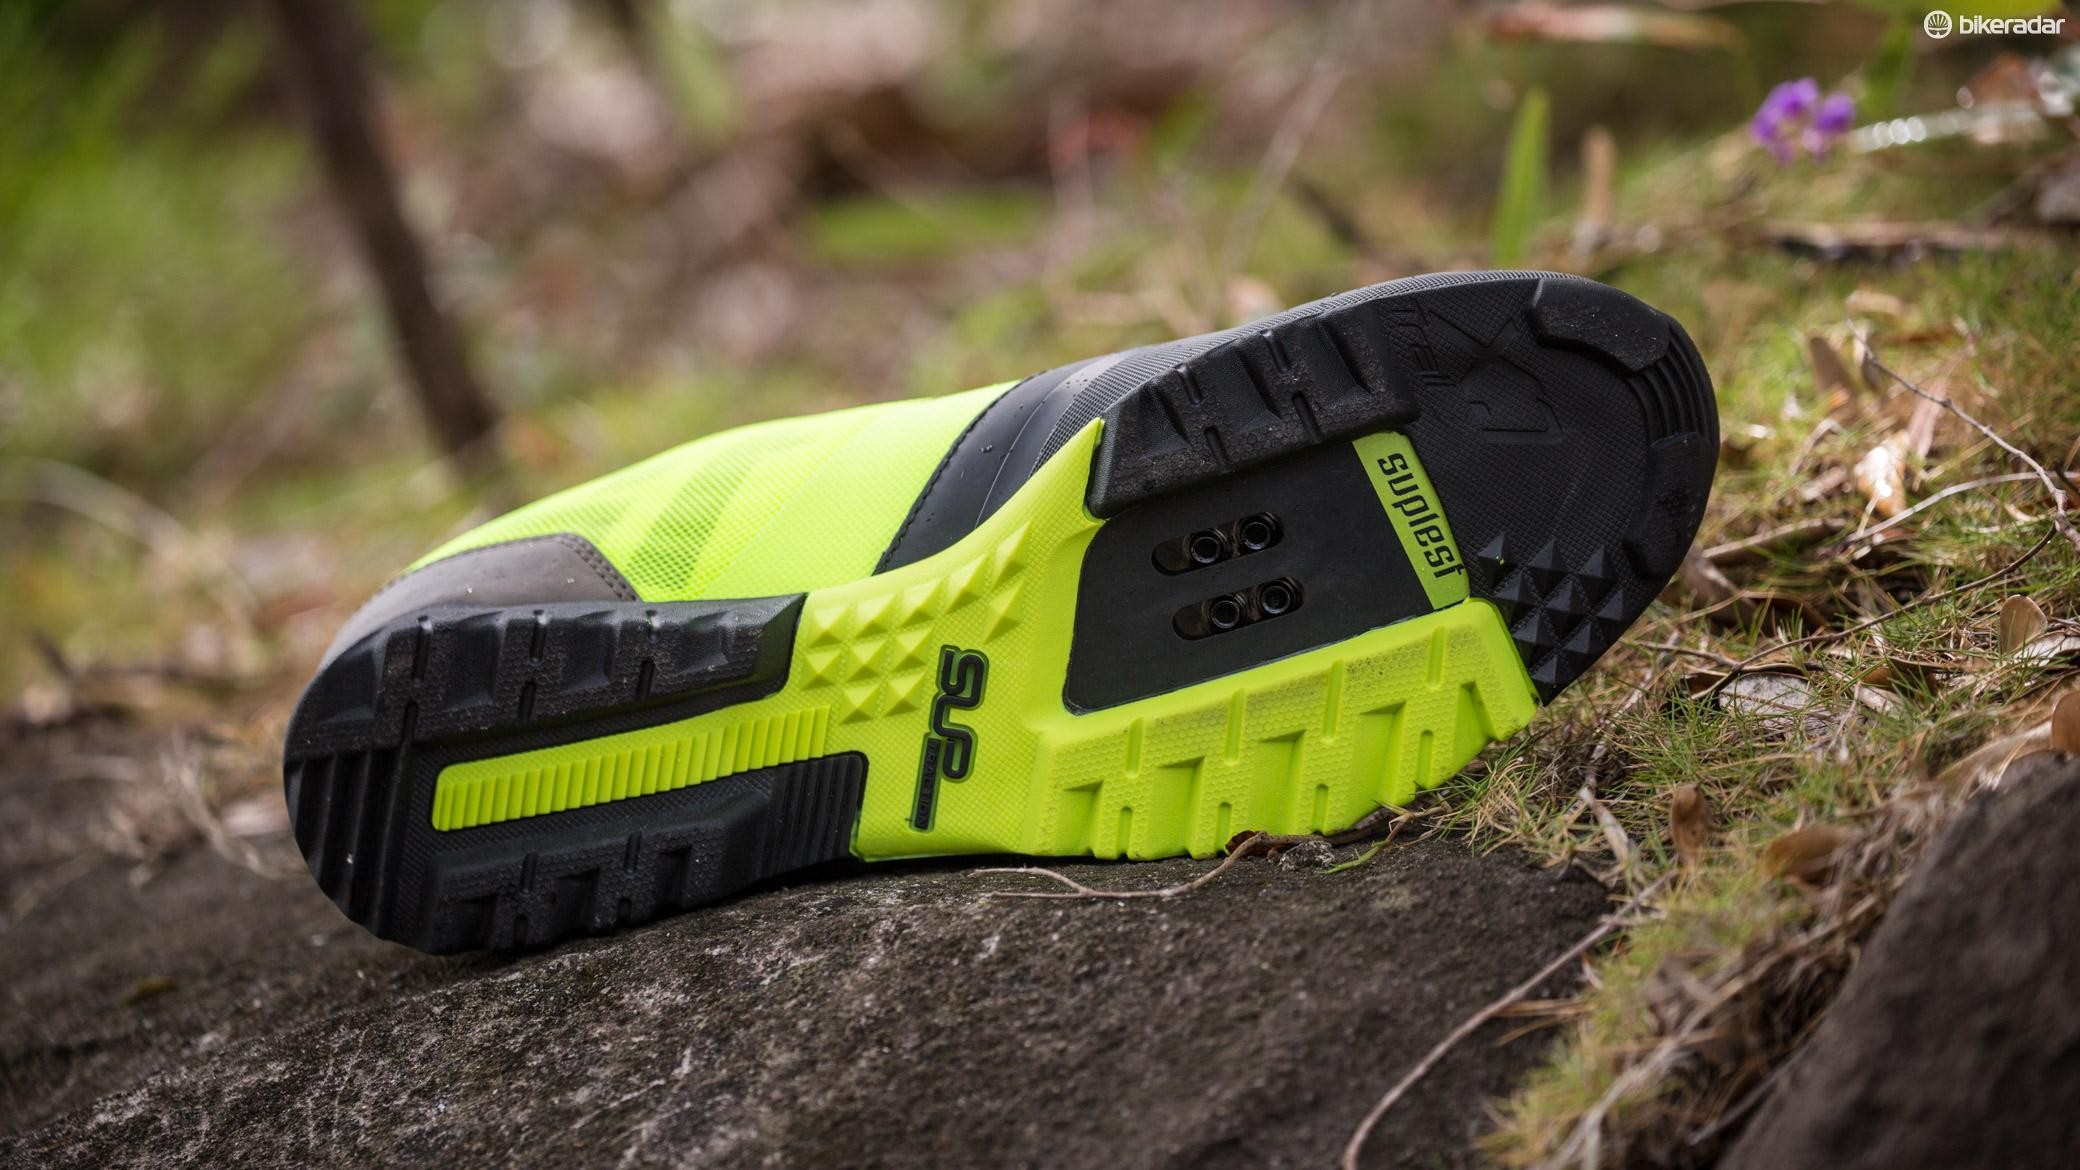 The tread depth is moderate and purchase is good